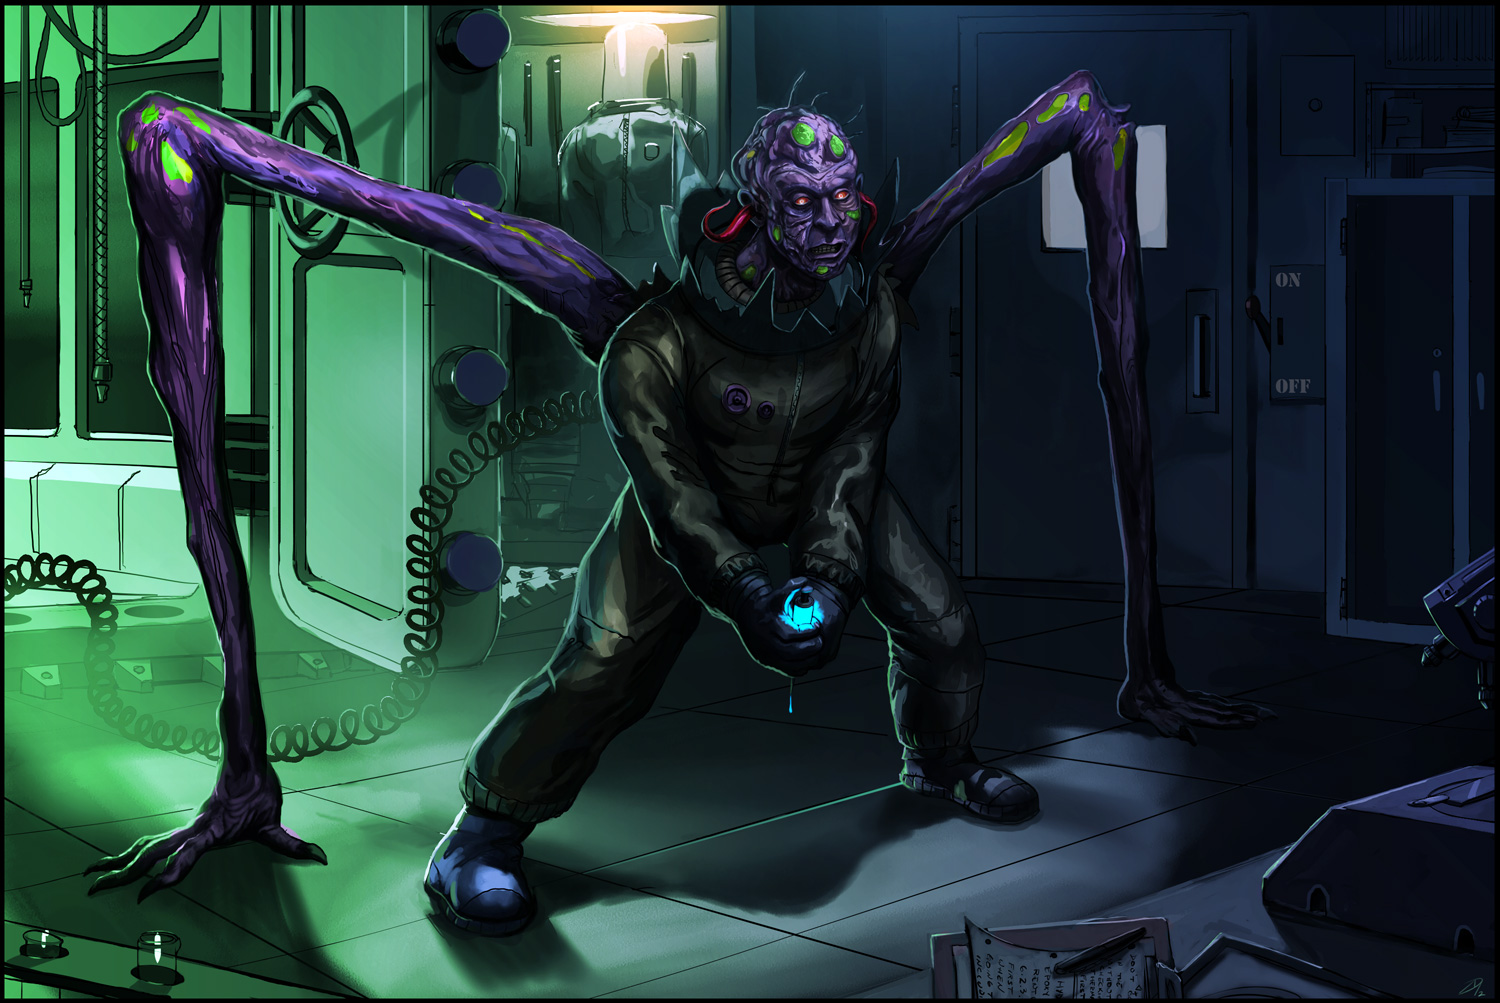 Infected-scientist-Final by Davesrightmind